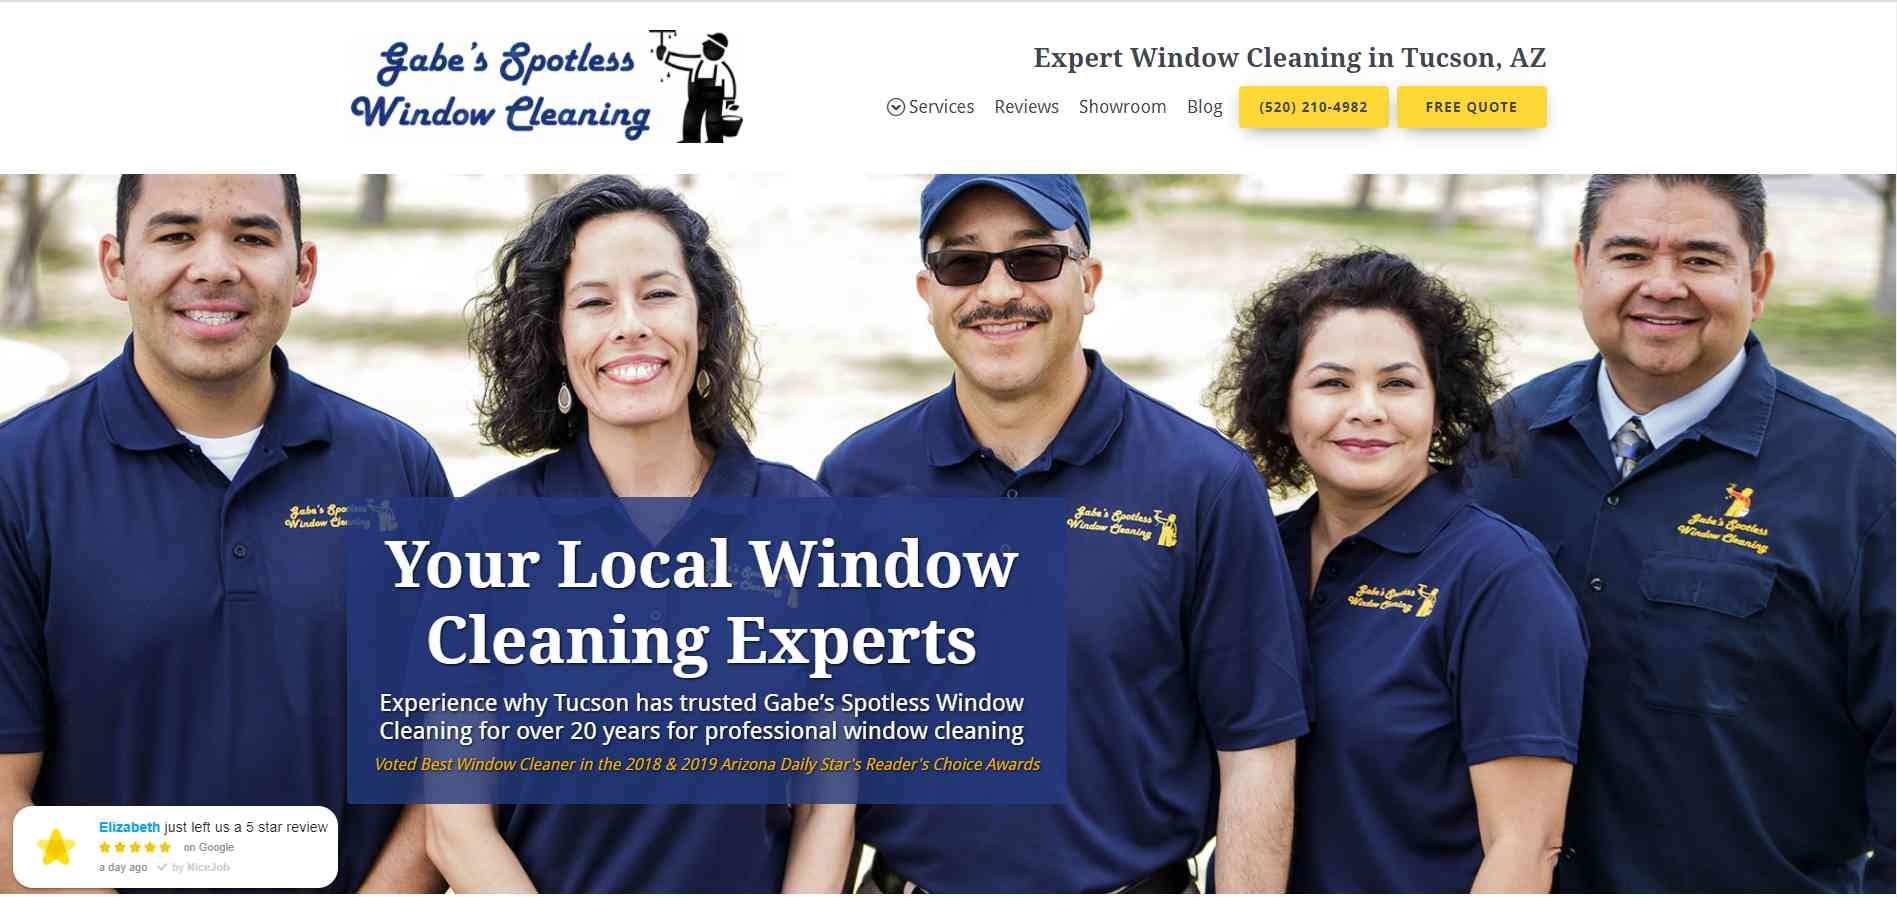 Screenshot of abe's Spotless Window Cleaning using a professional team photo on their website for their cleaning company.